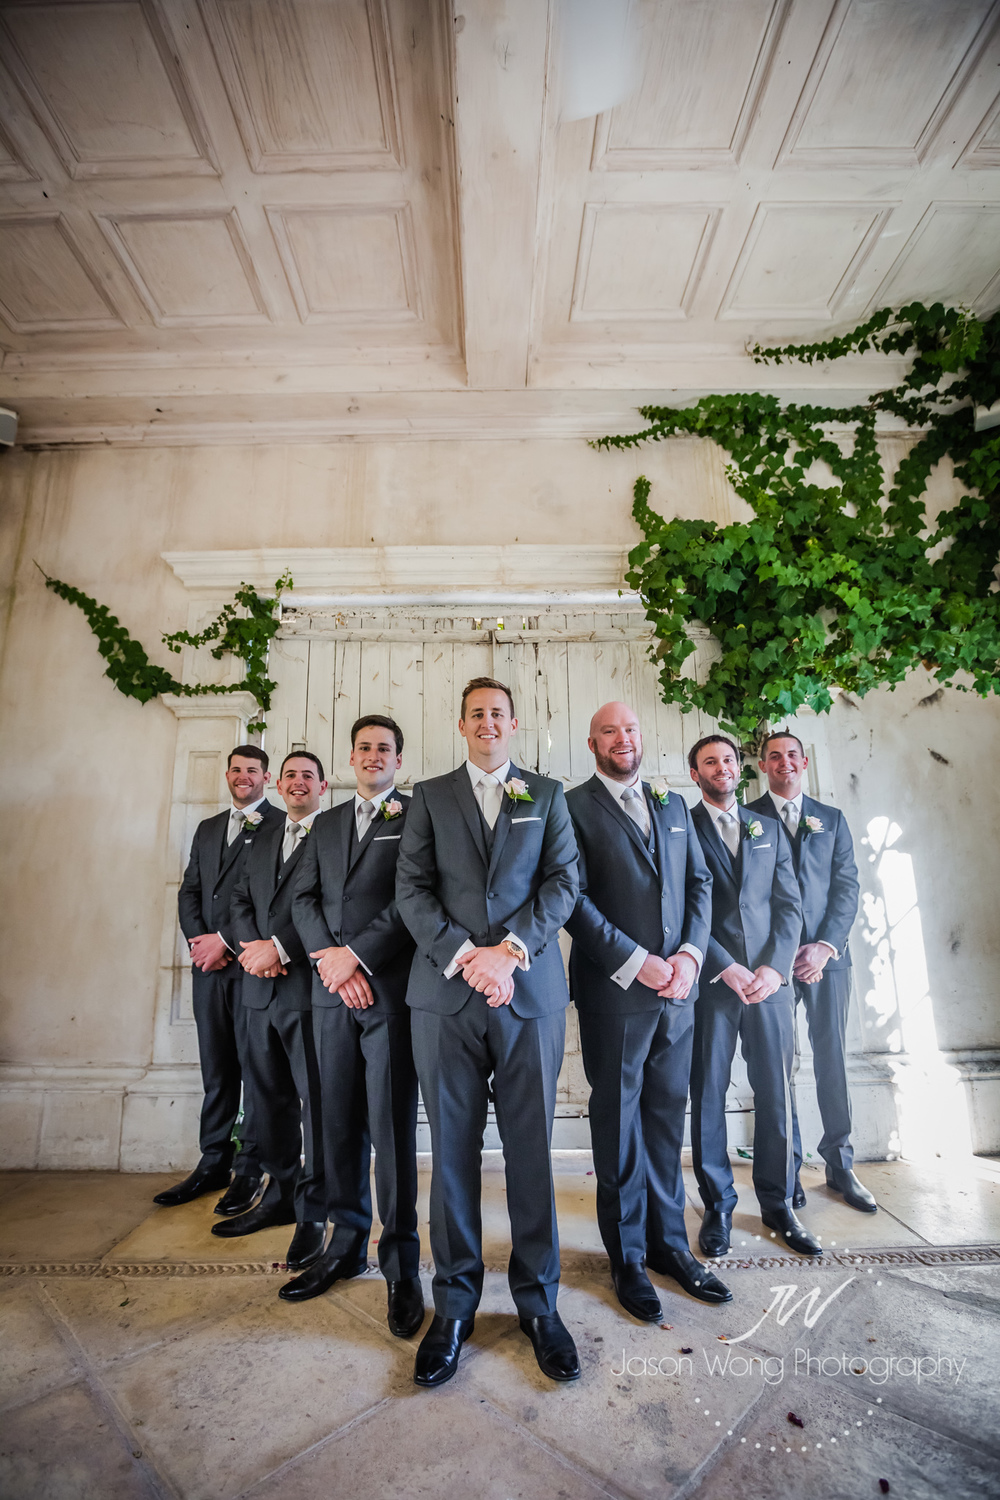 groom-and-groomsmen-looking-smart.jpg